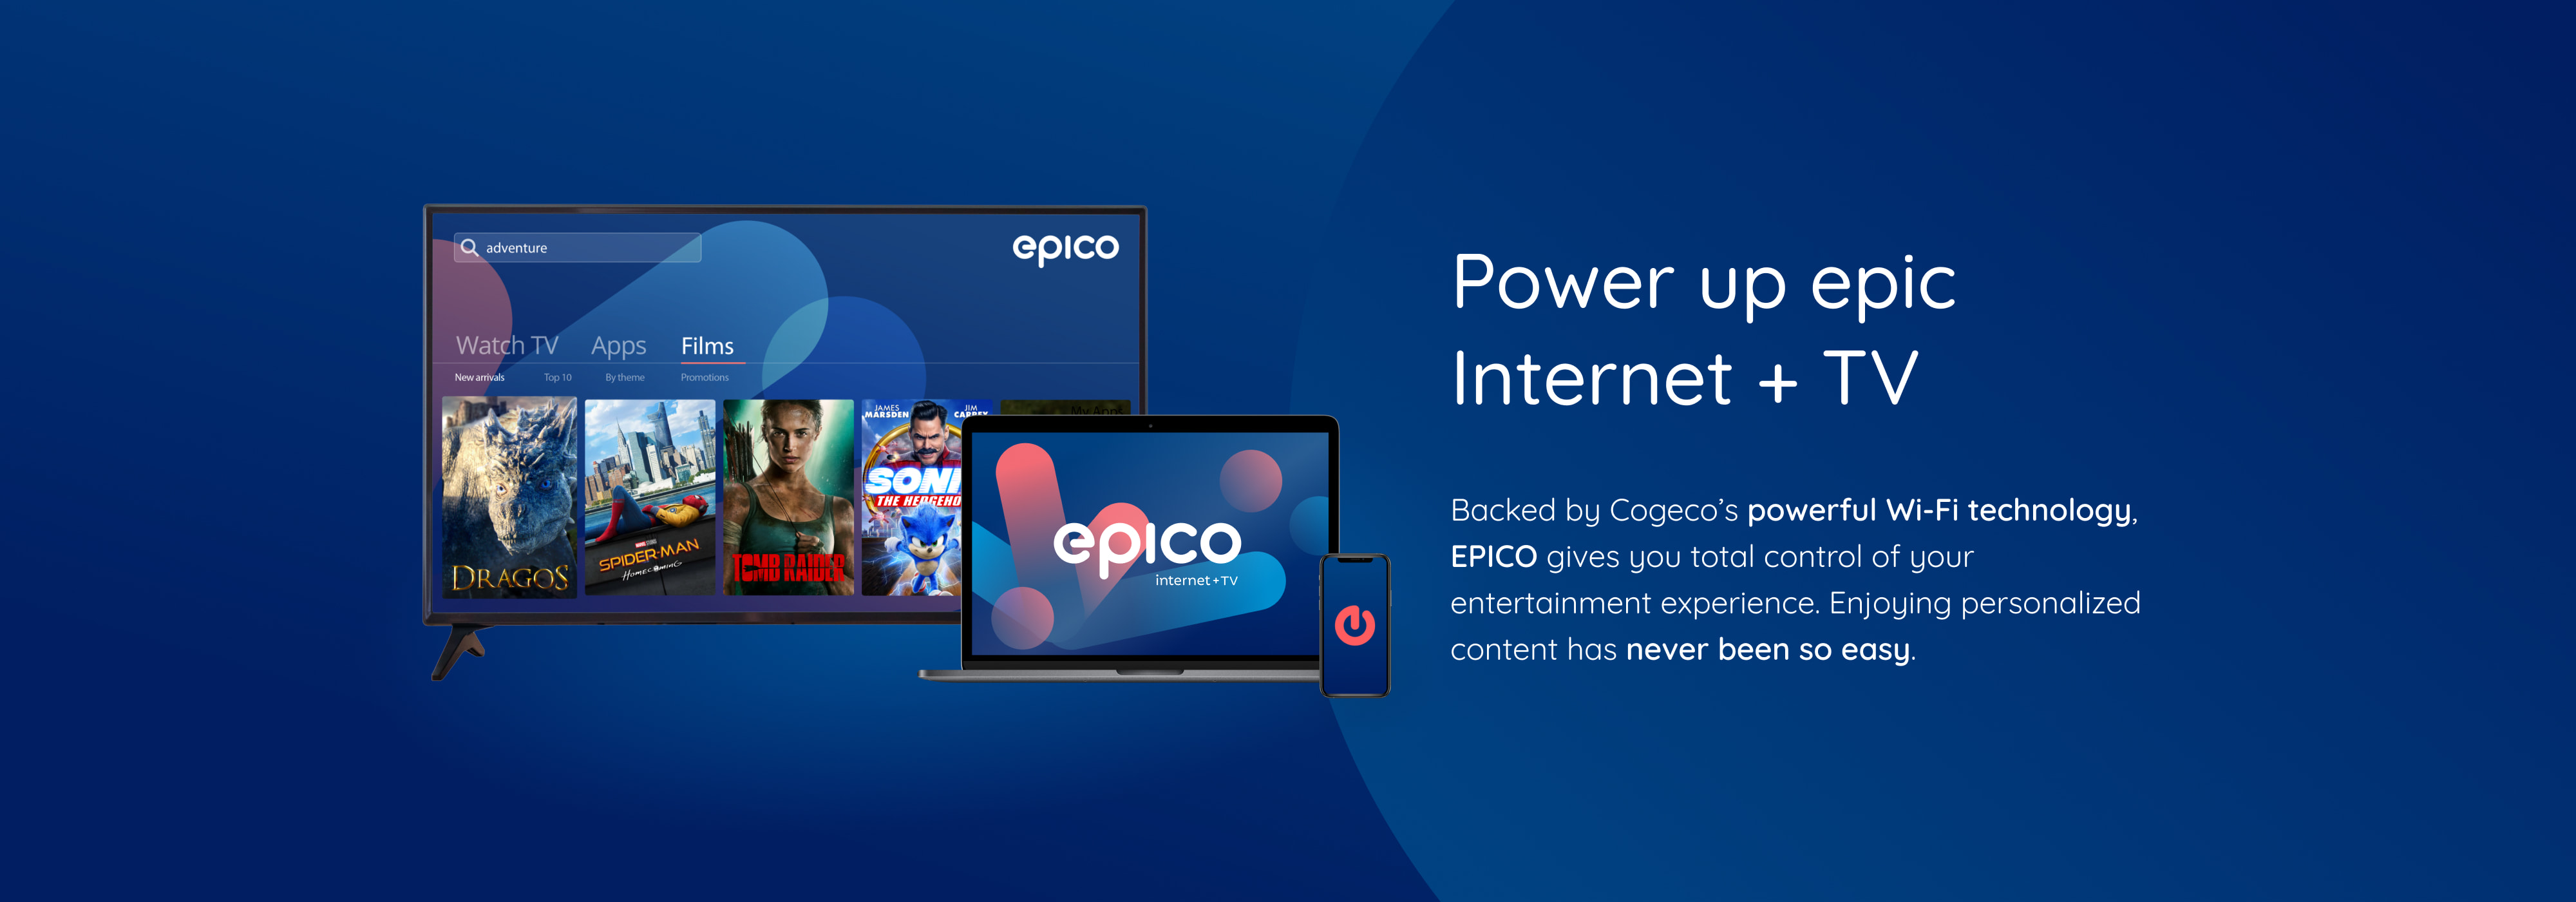 Backed by Cogeco's powerful Wi-Fi technology, EPICO gives you total control of your entertainment experience. Enjoying personalized content has never been so easy.